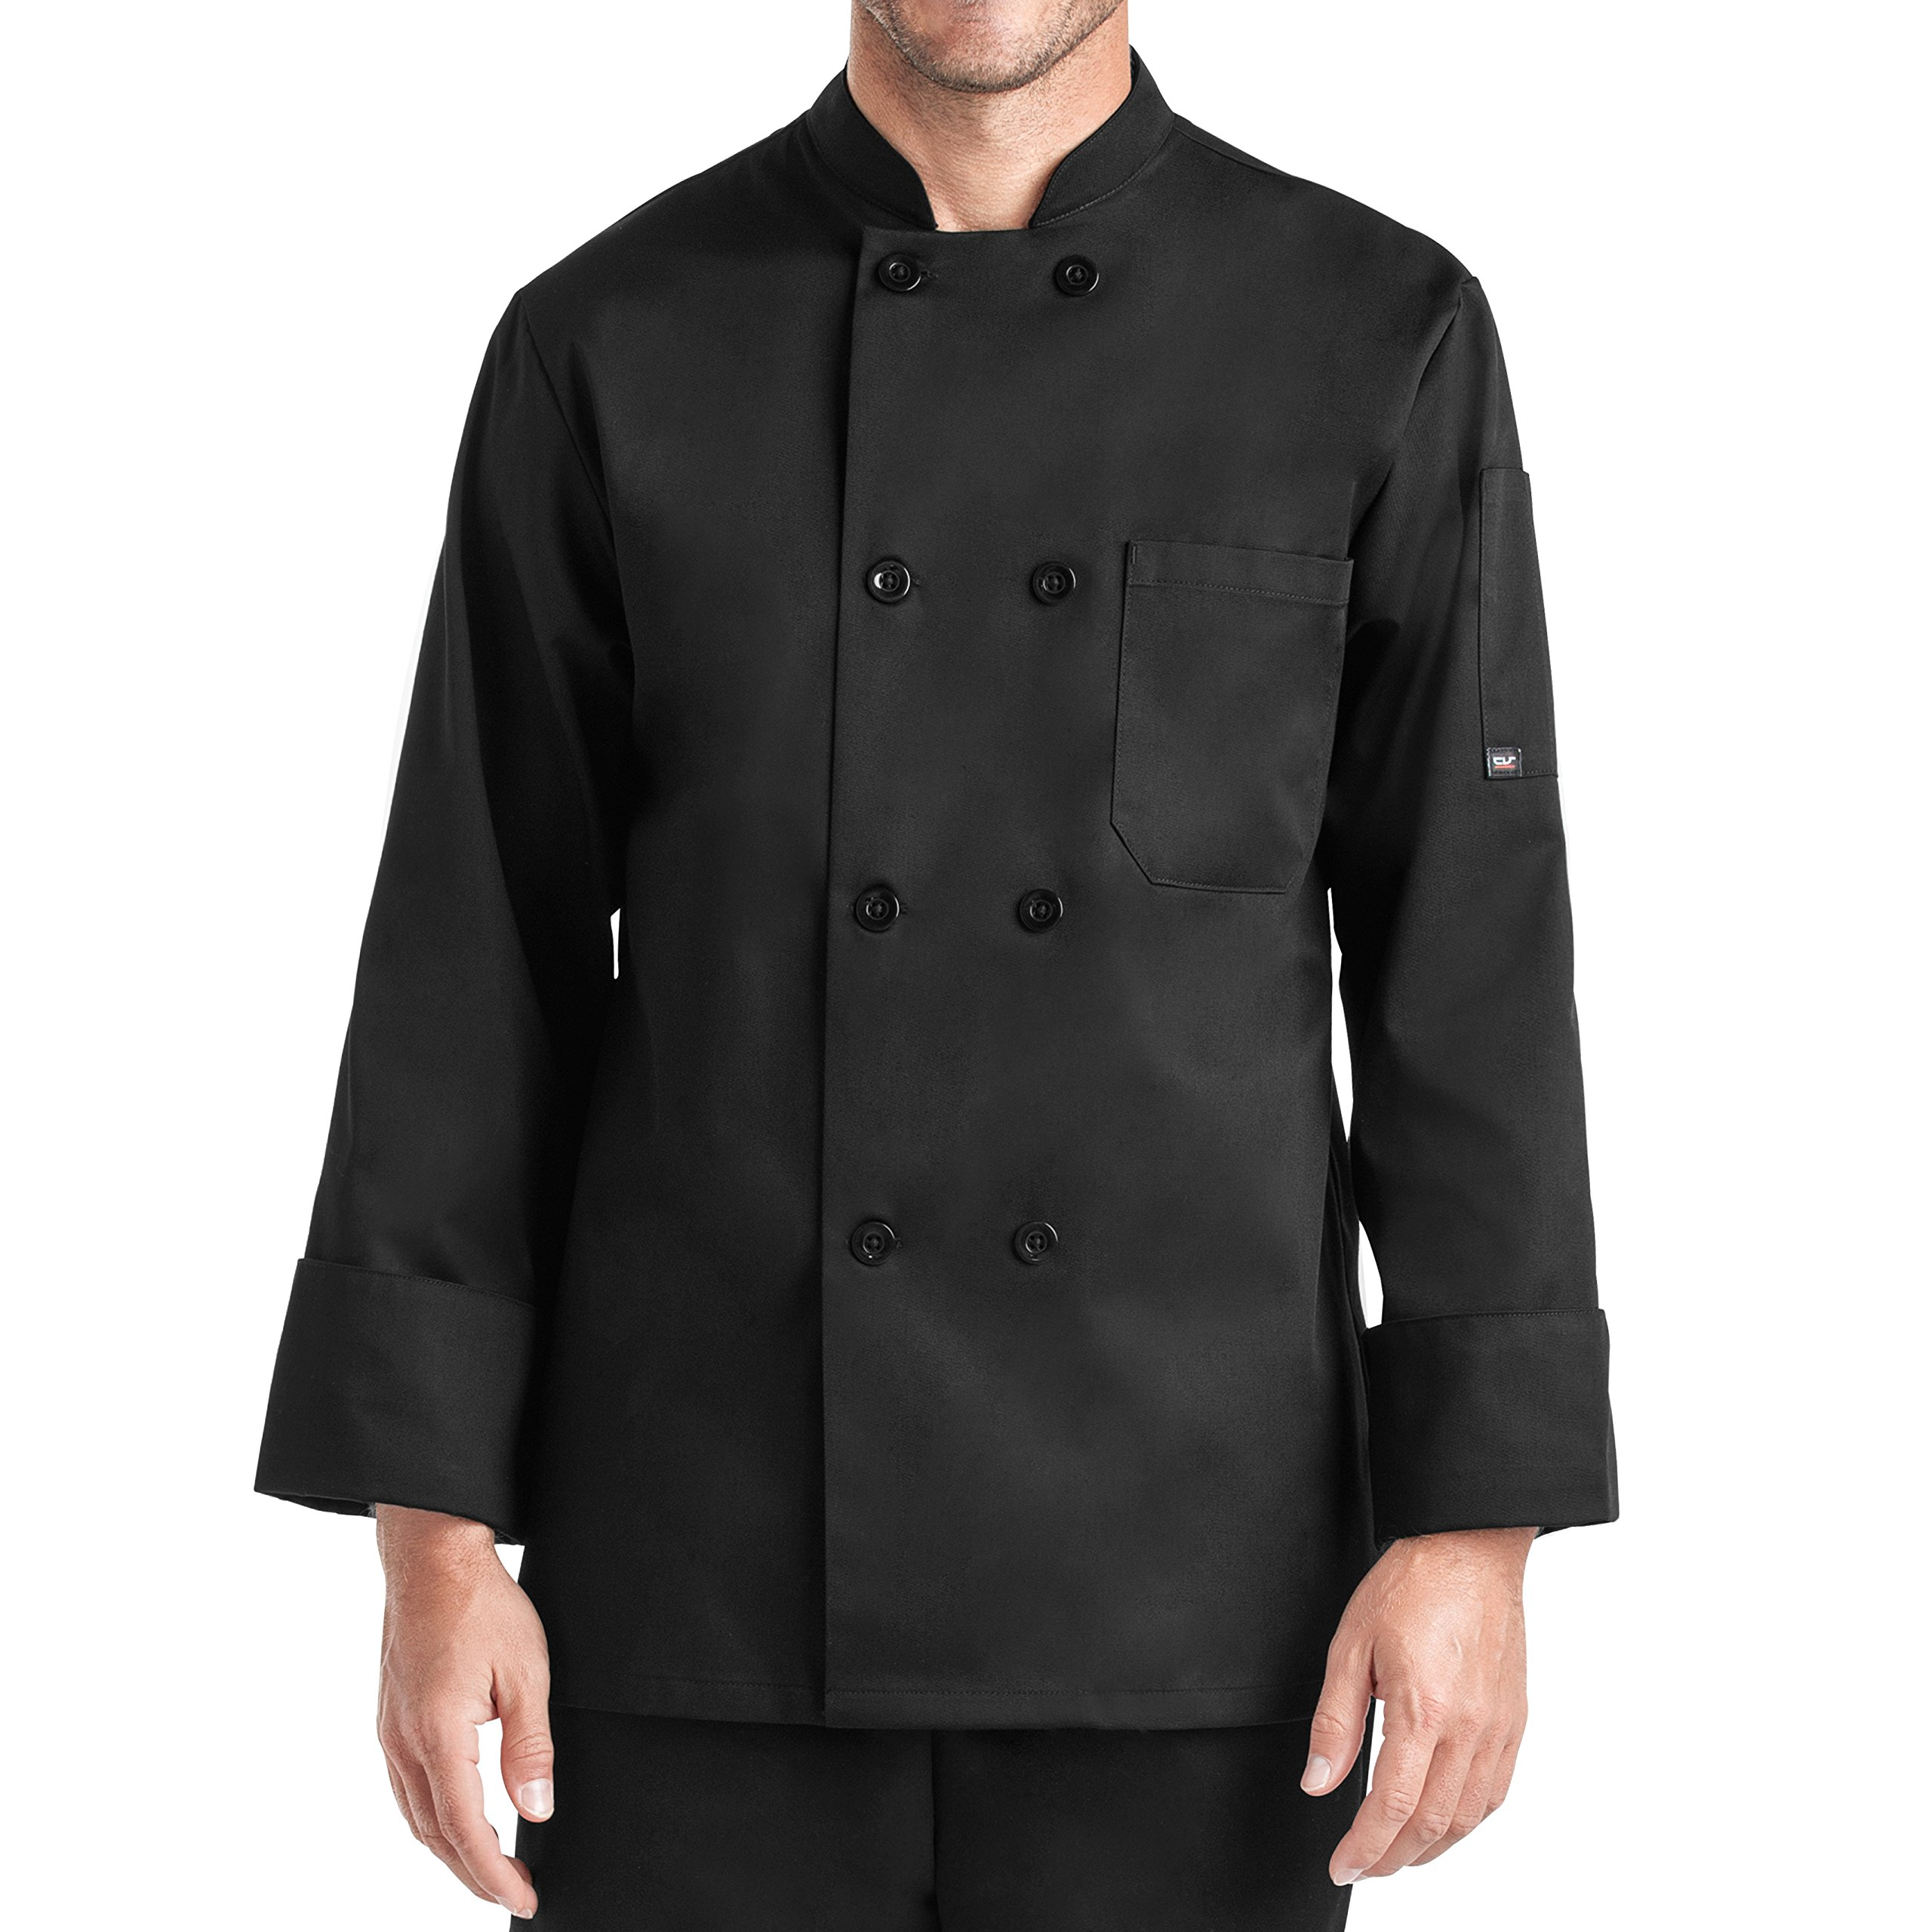 Unisex Long Sleeve Chef Coat/Double Breasted/Plastic Button Reversible Front Closure (S-2X, 2 Colors) (Black, Large)